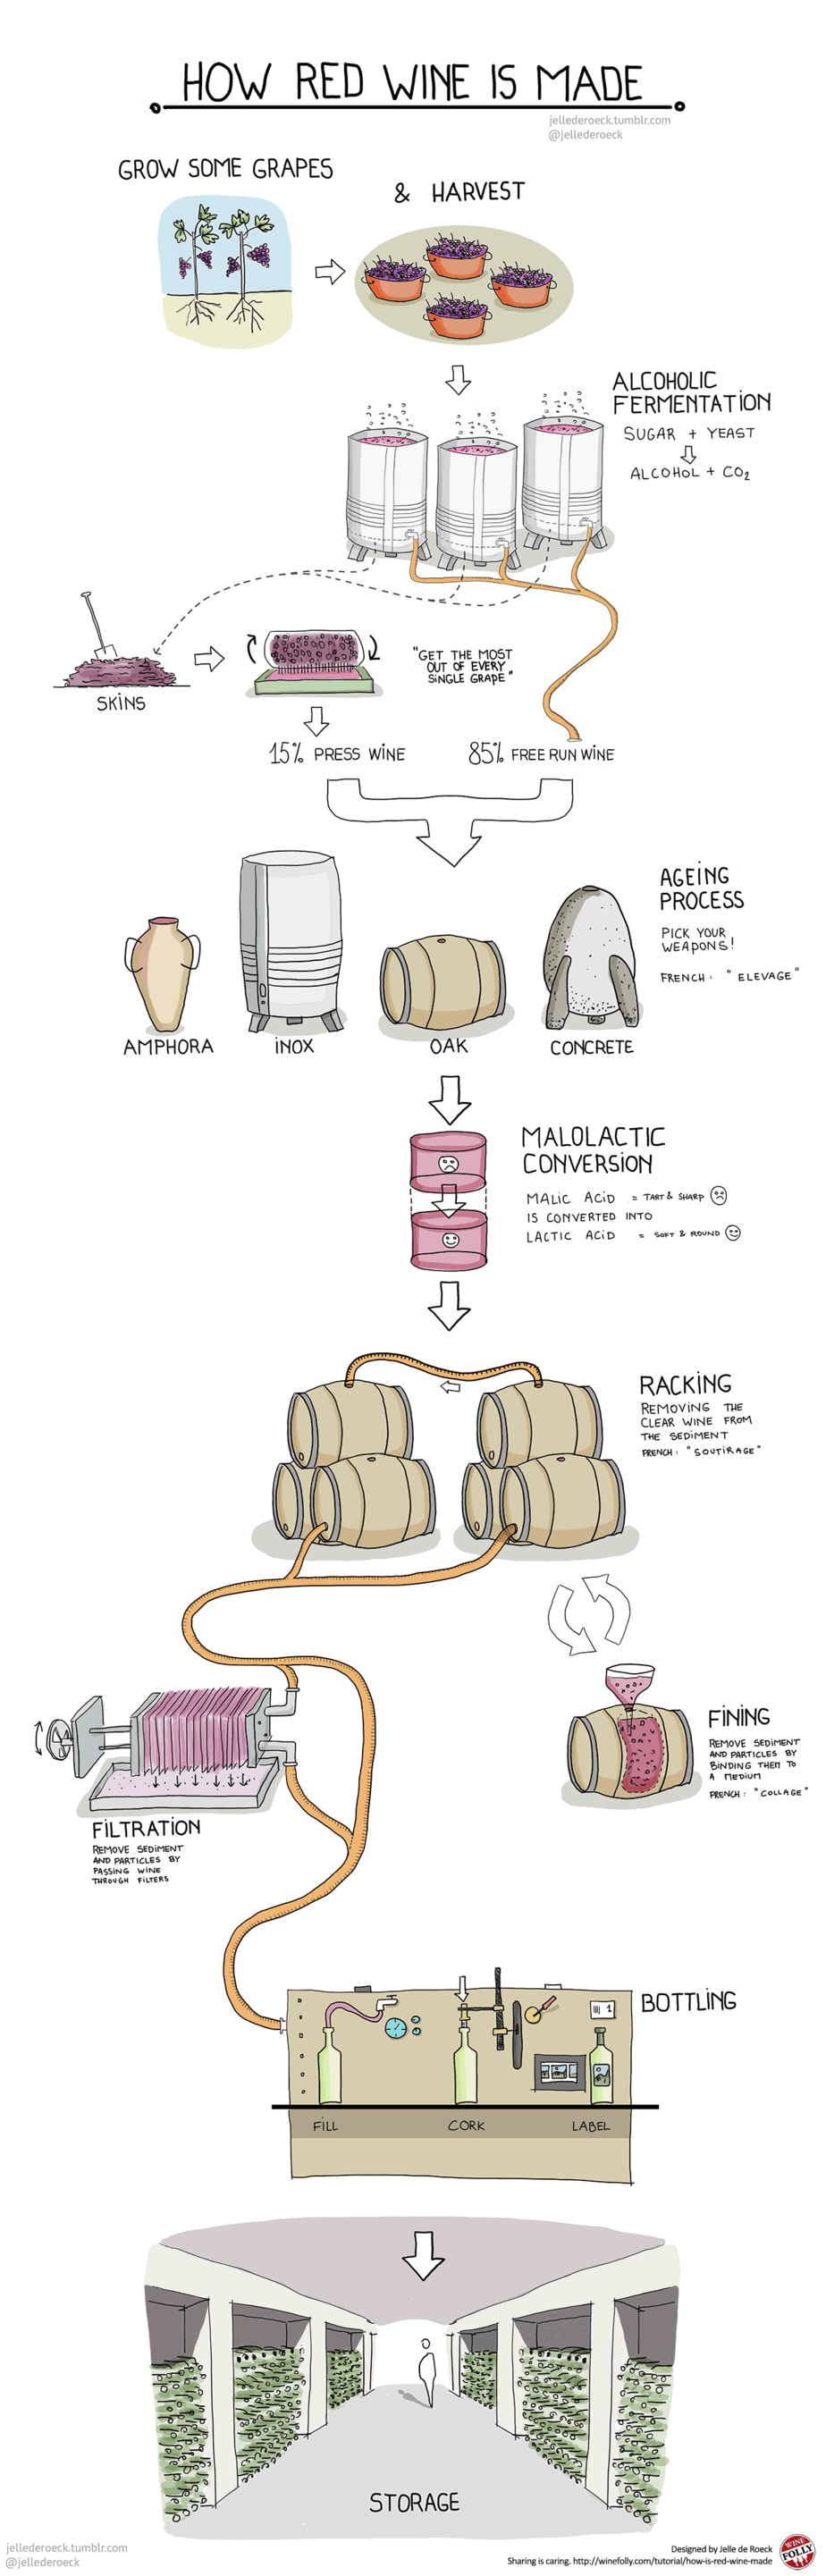 Wine-ing Wednesday – How Red Wine is Made!